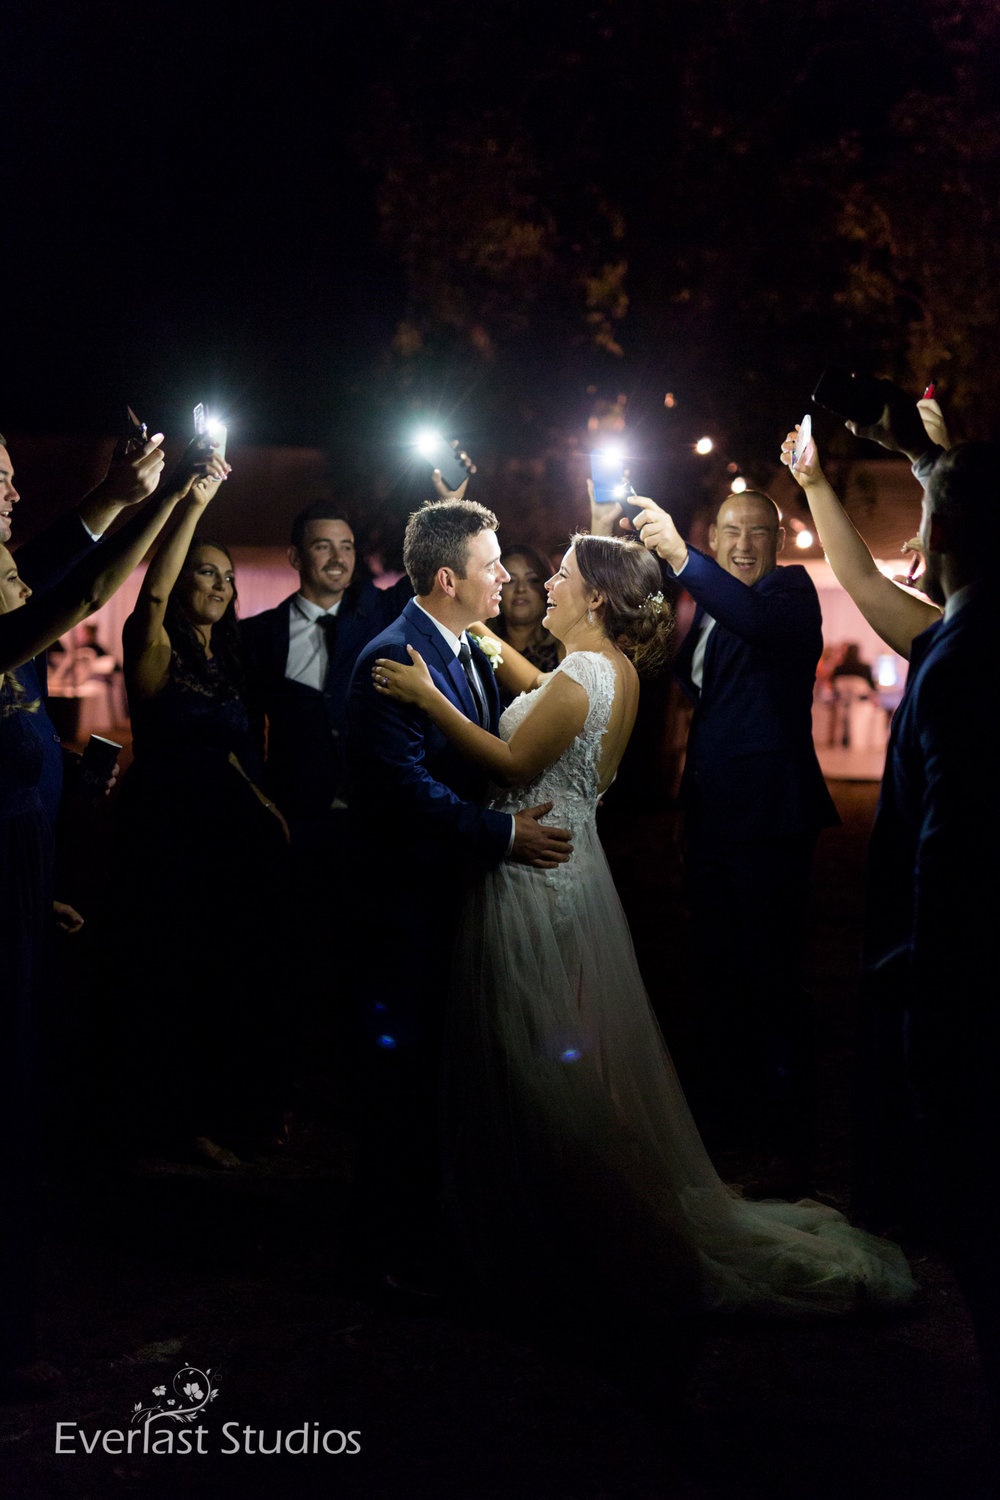 night wedding photography